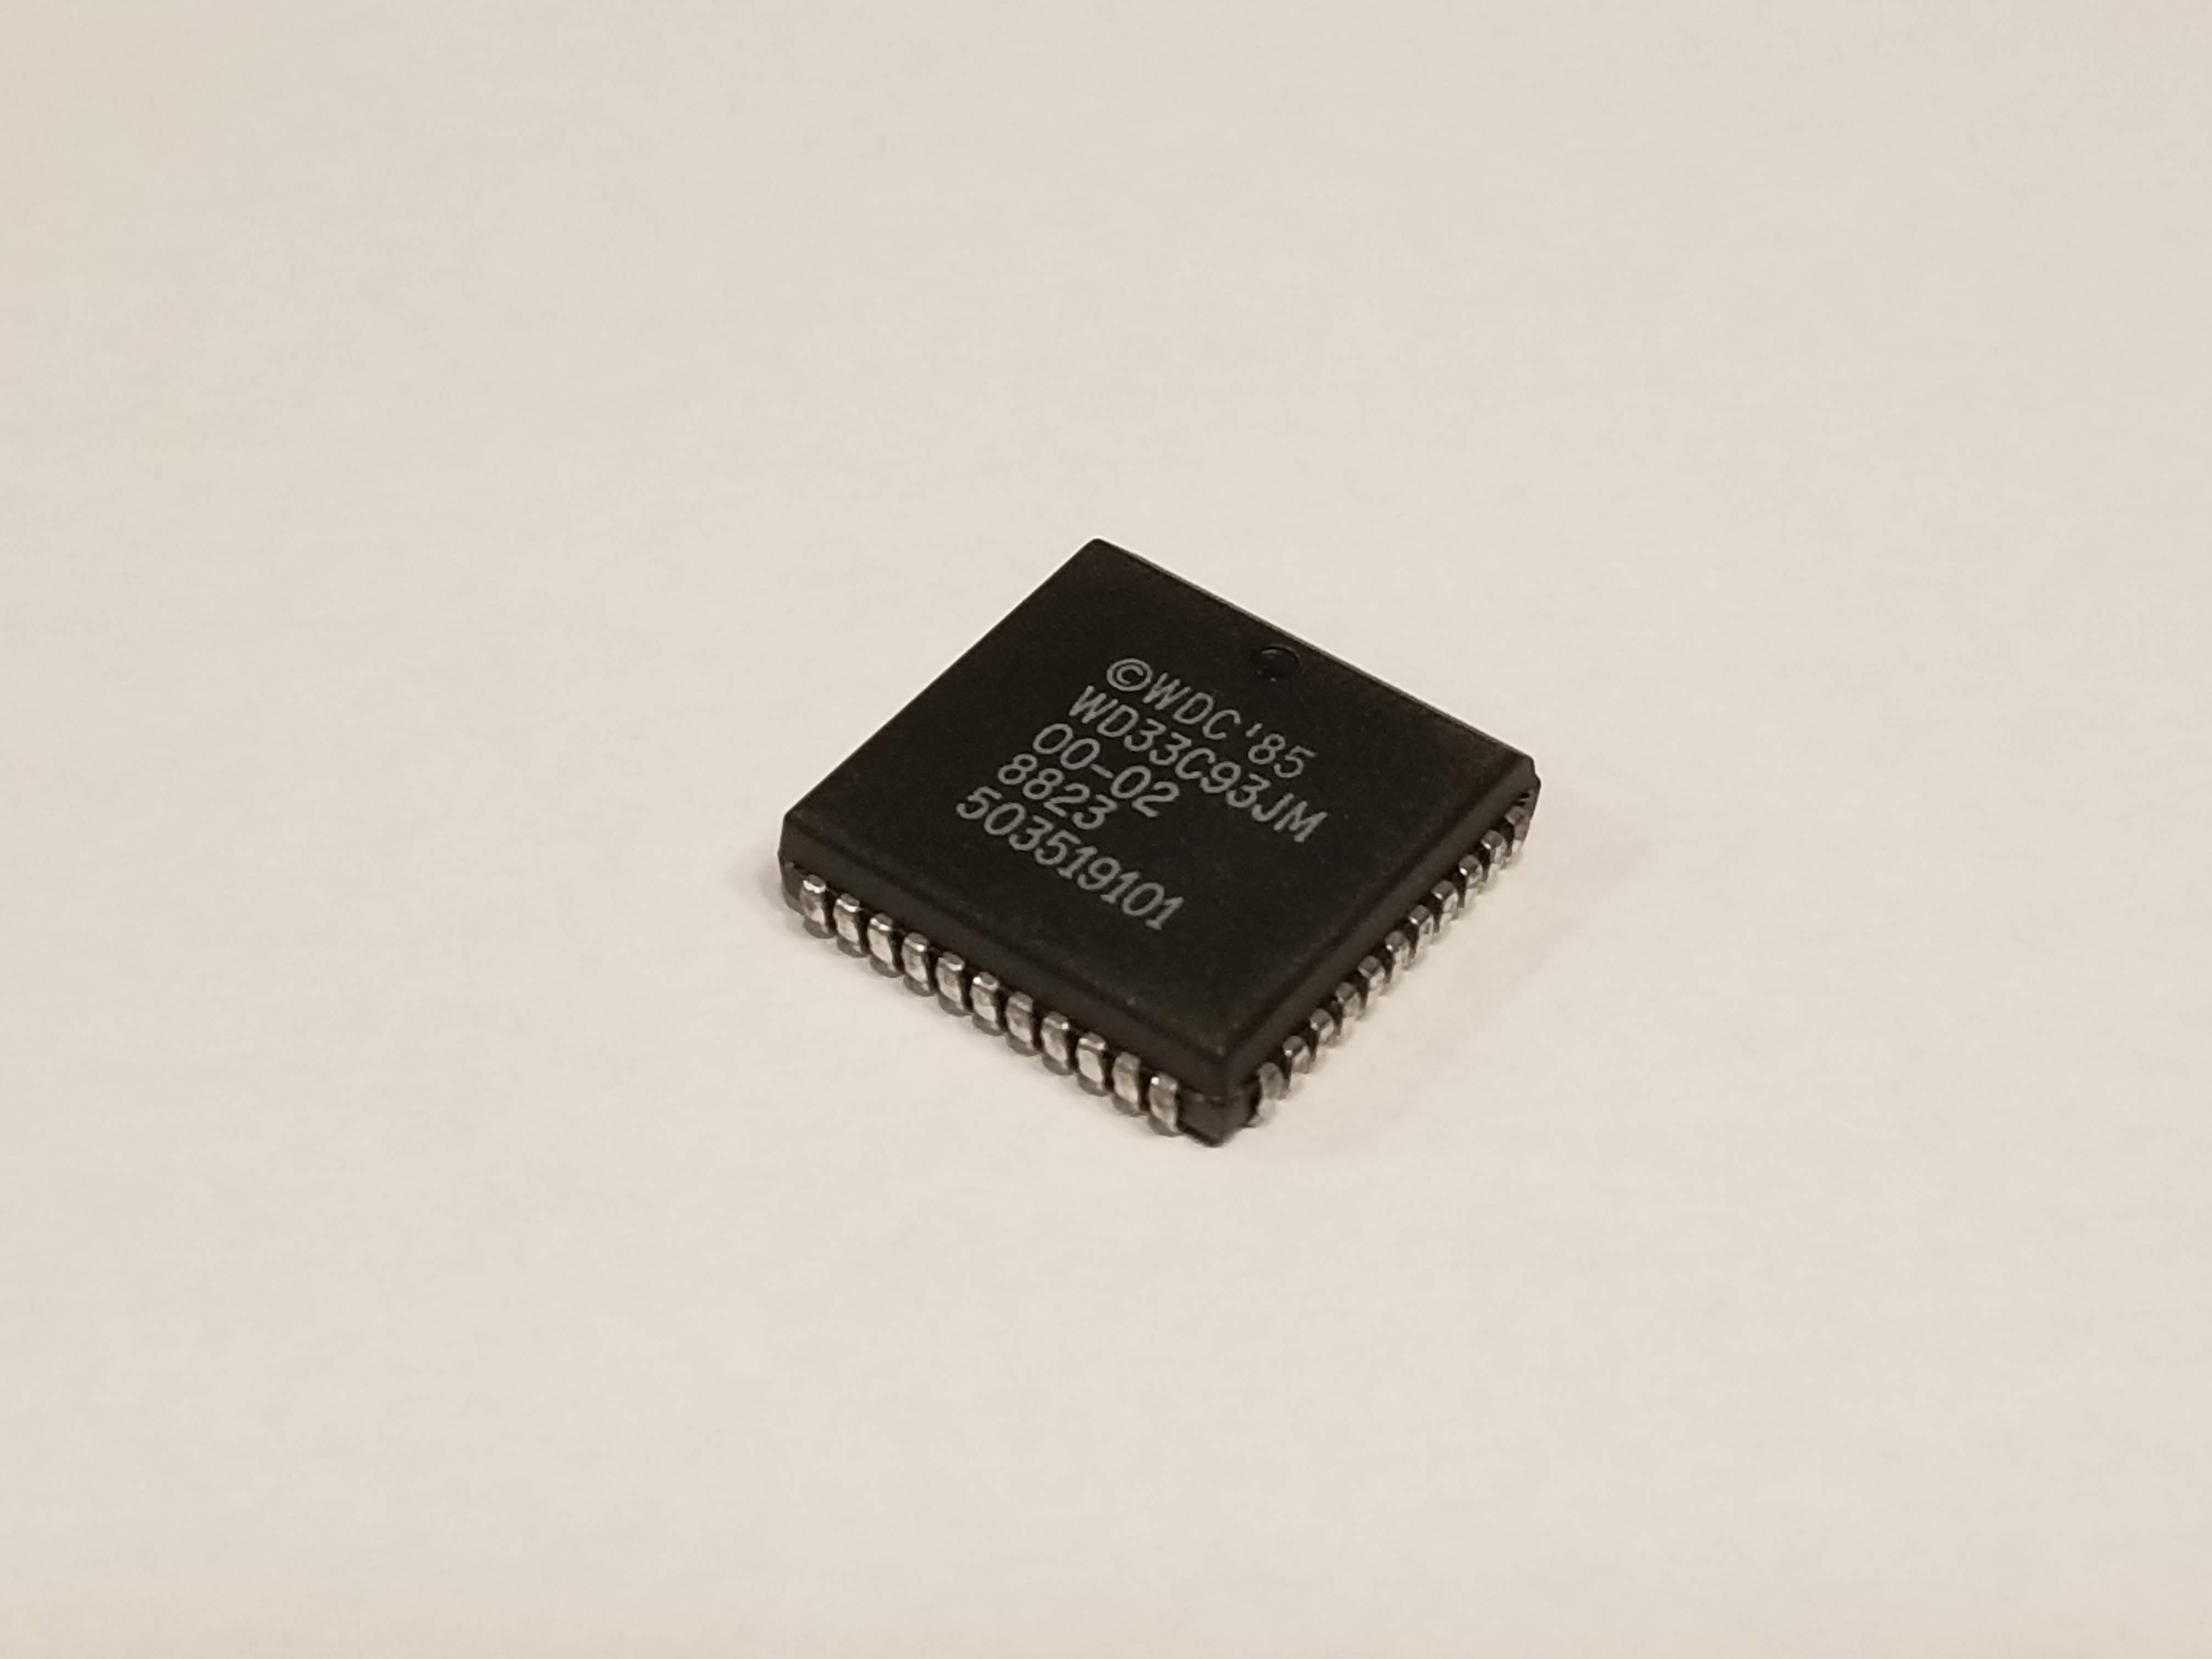 Picture of WD33C93 SCSI Bus Interface Controller